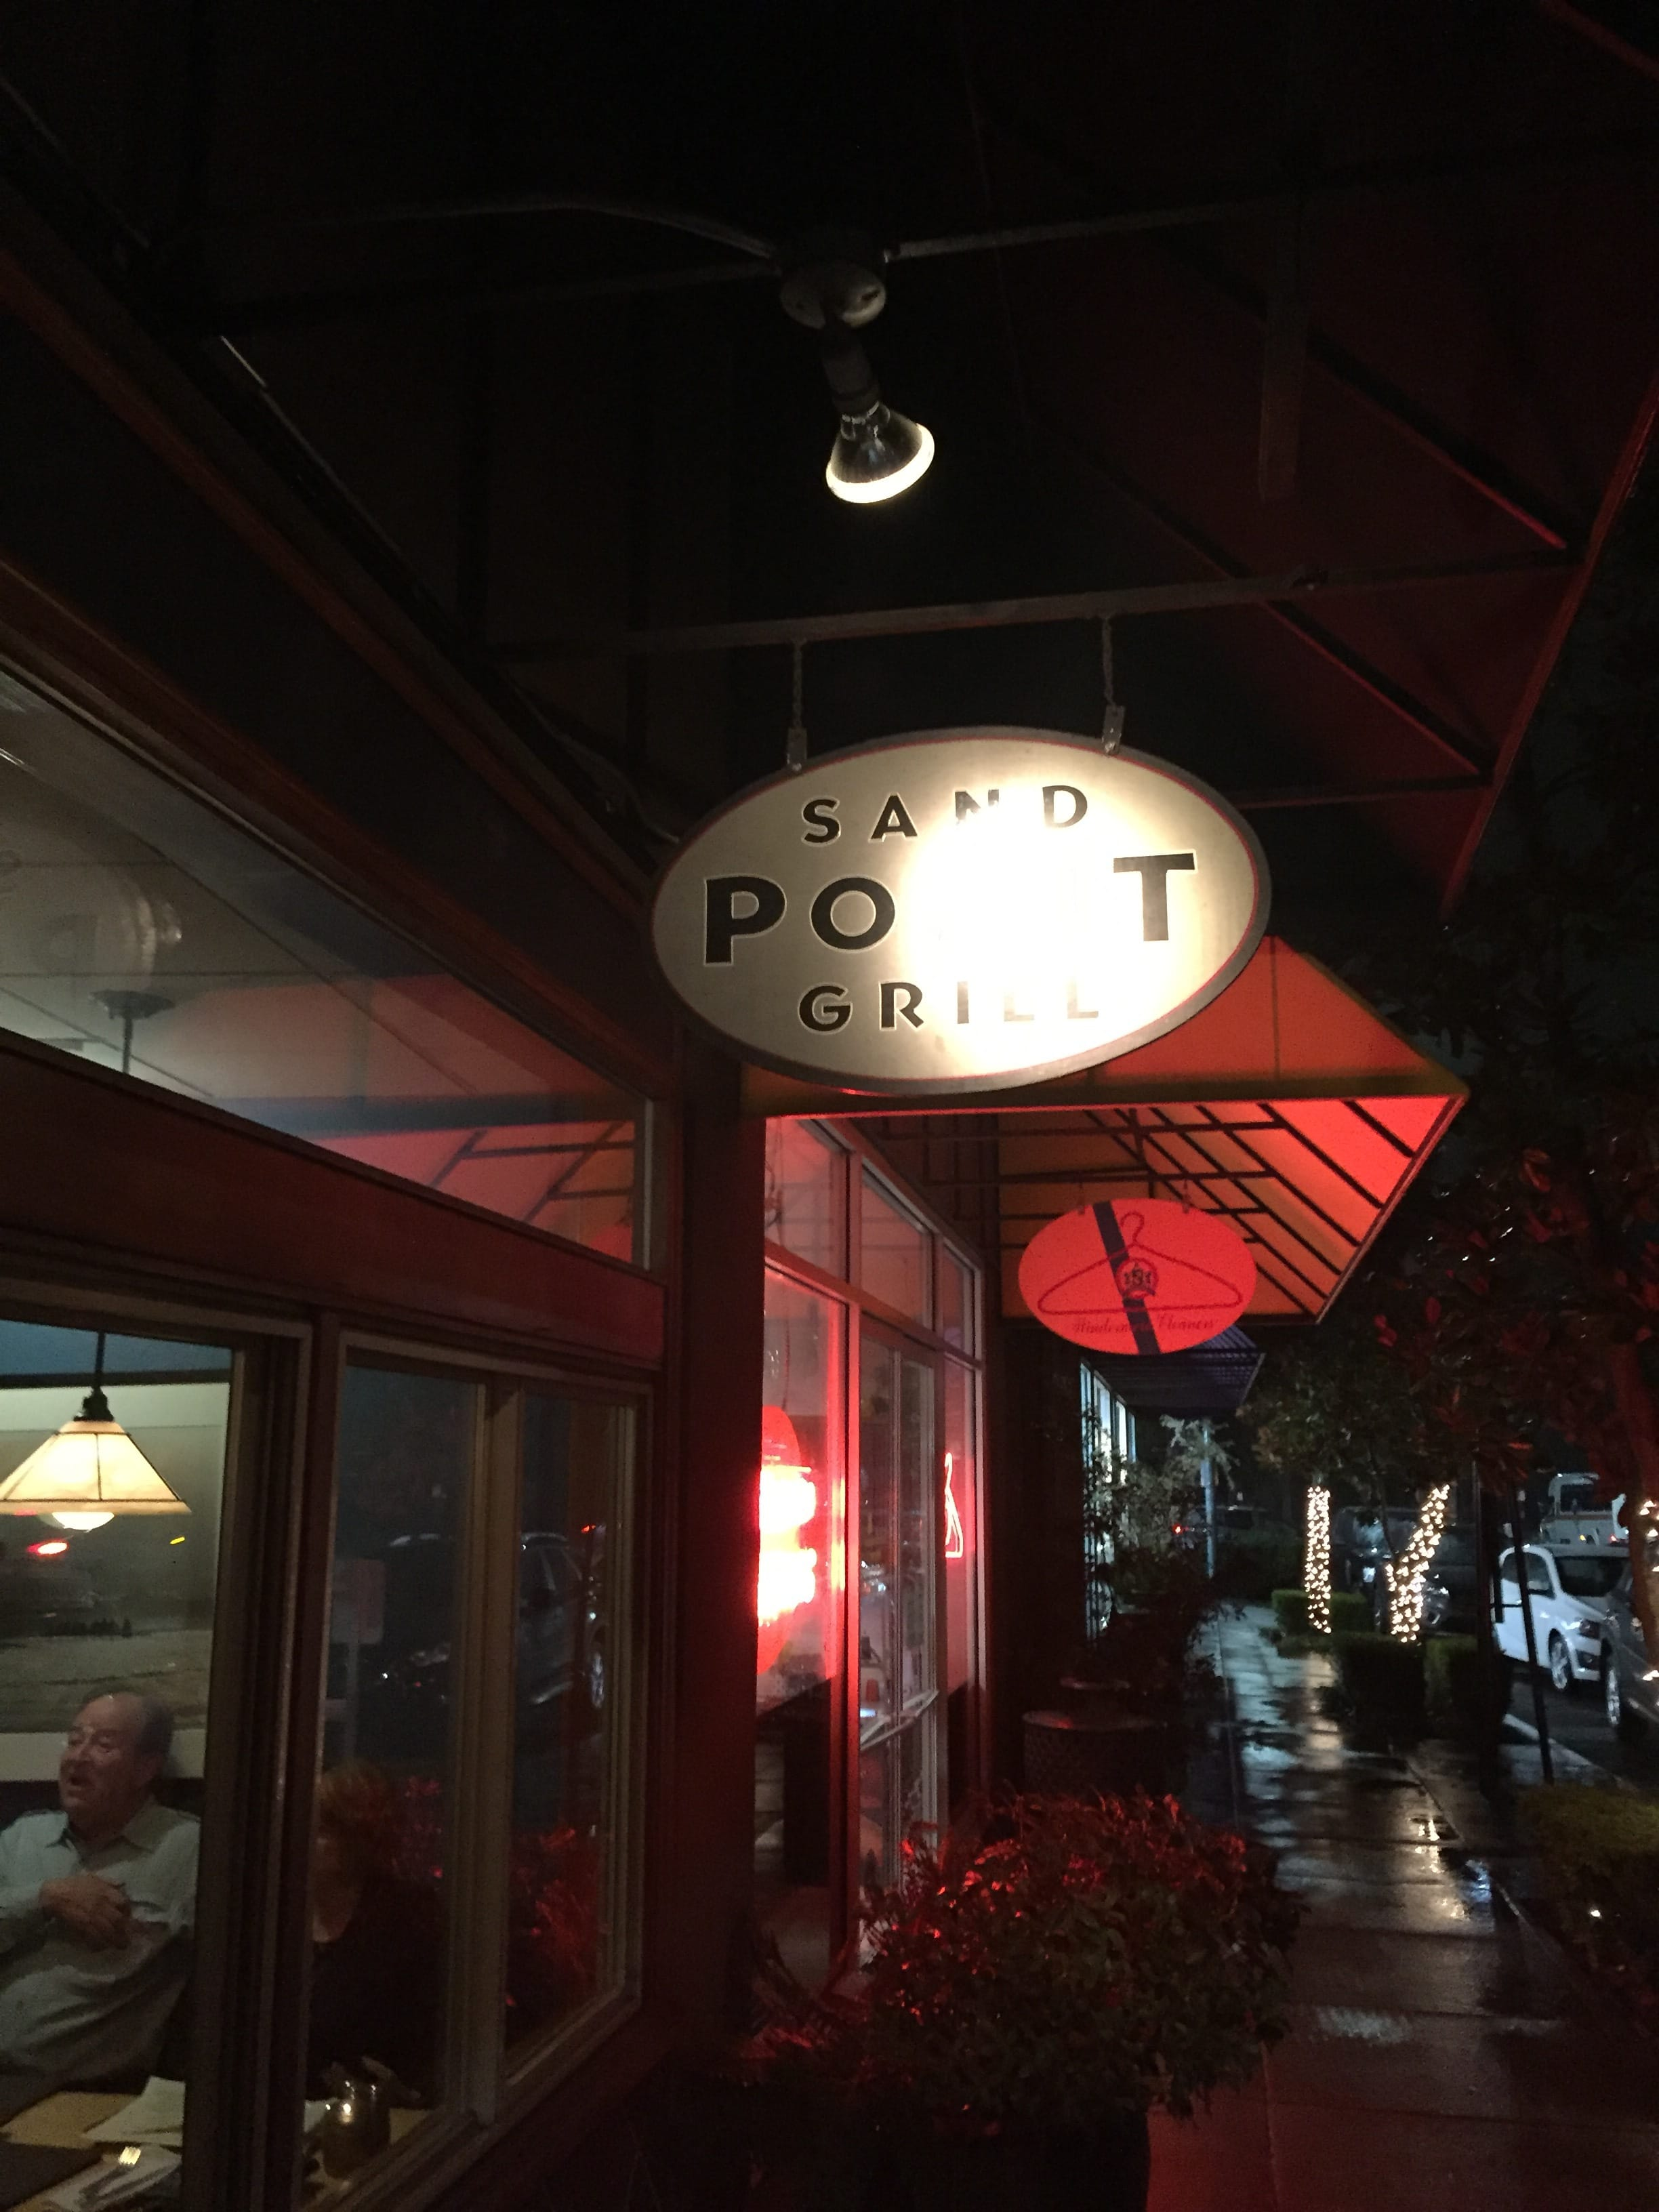 Sand Point Grill Street View